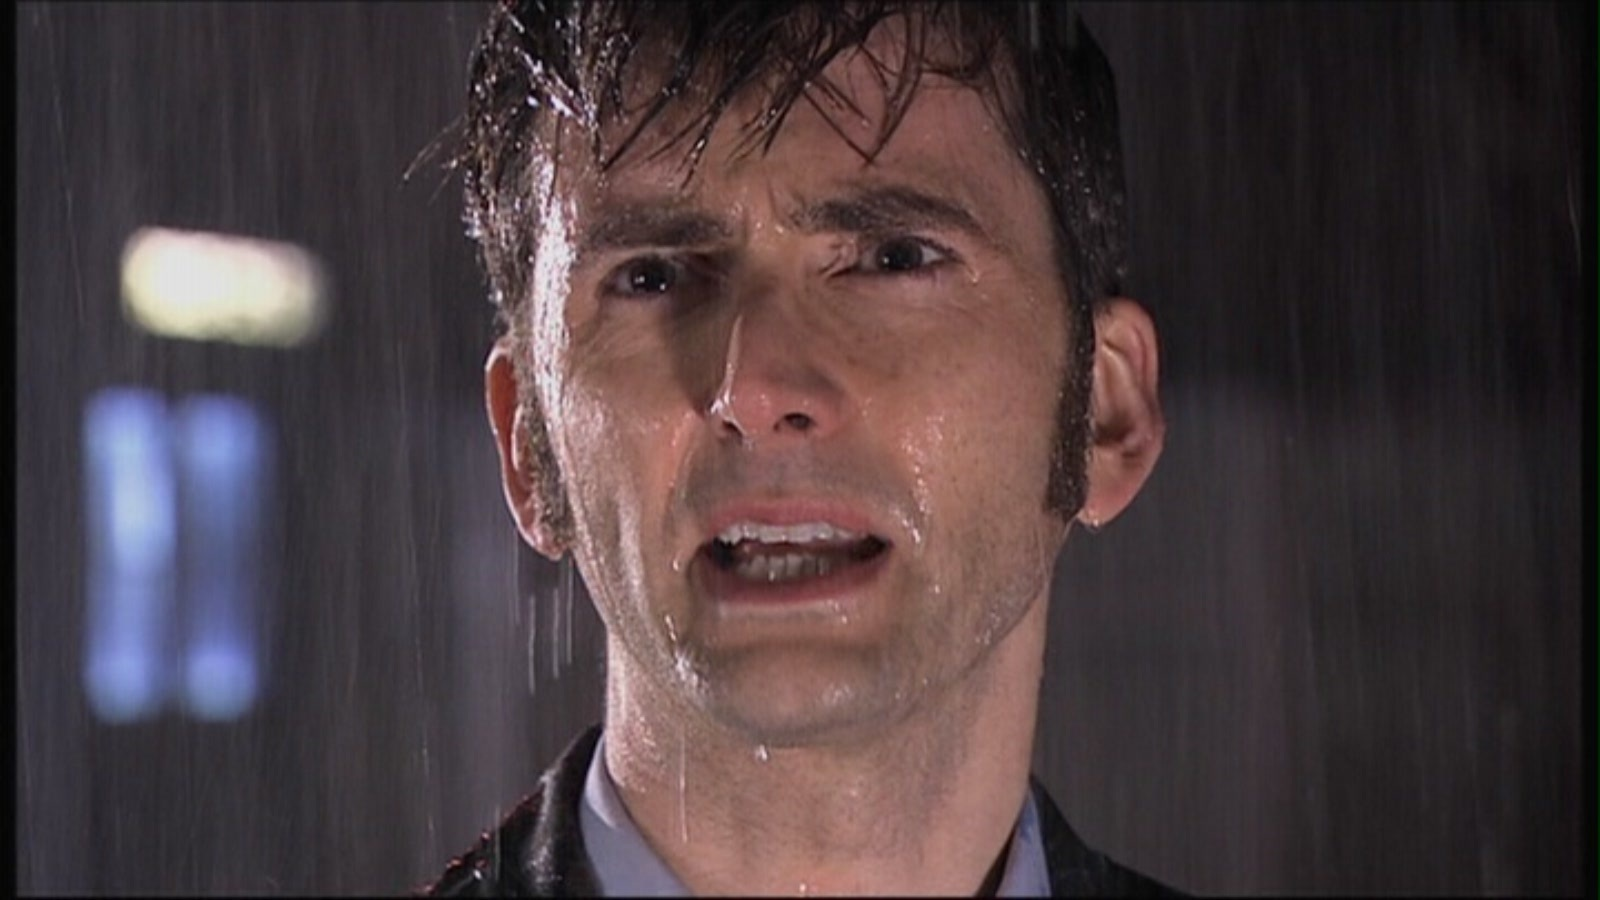 4x13 Journey's End - Doctor Who Image (21332208) - Fanpop